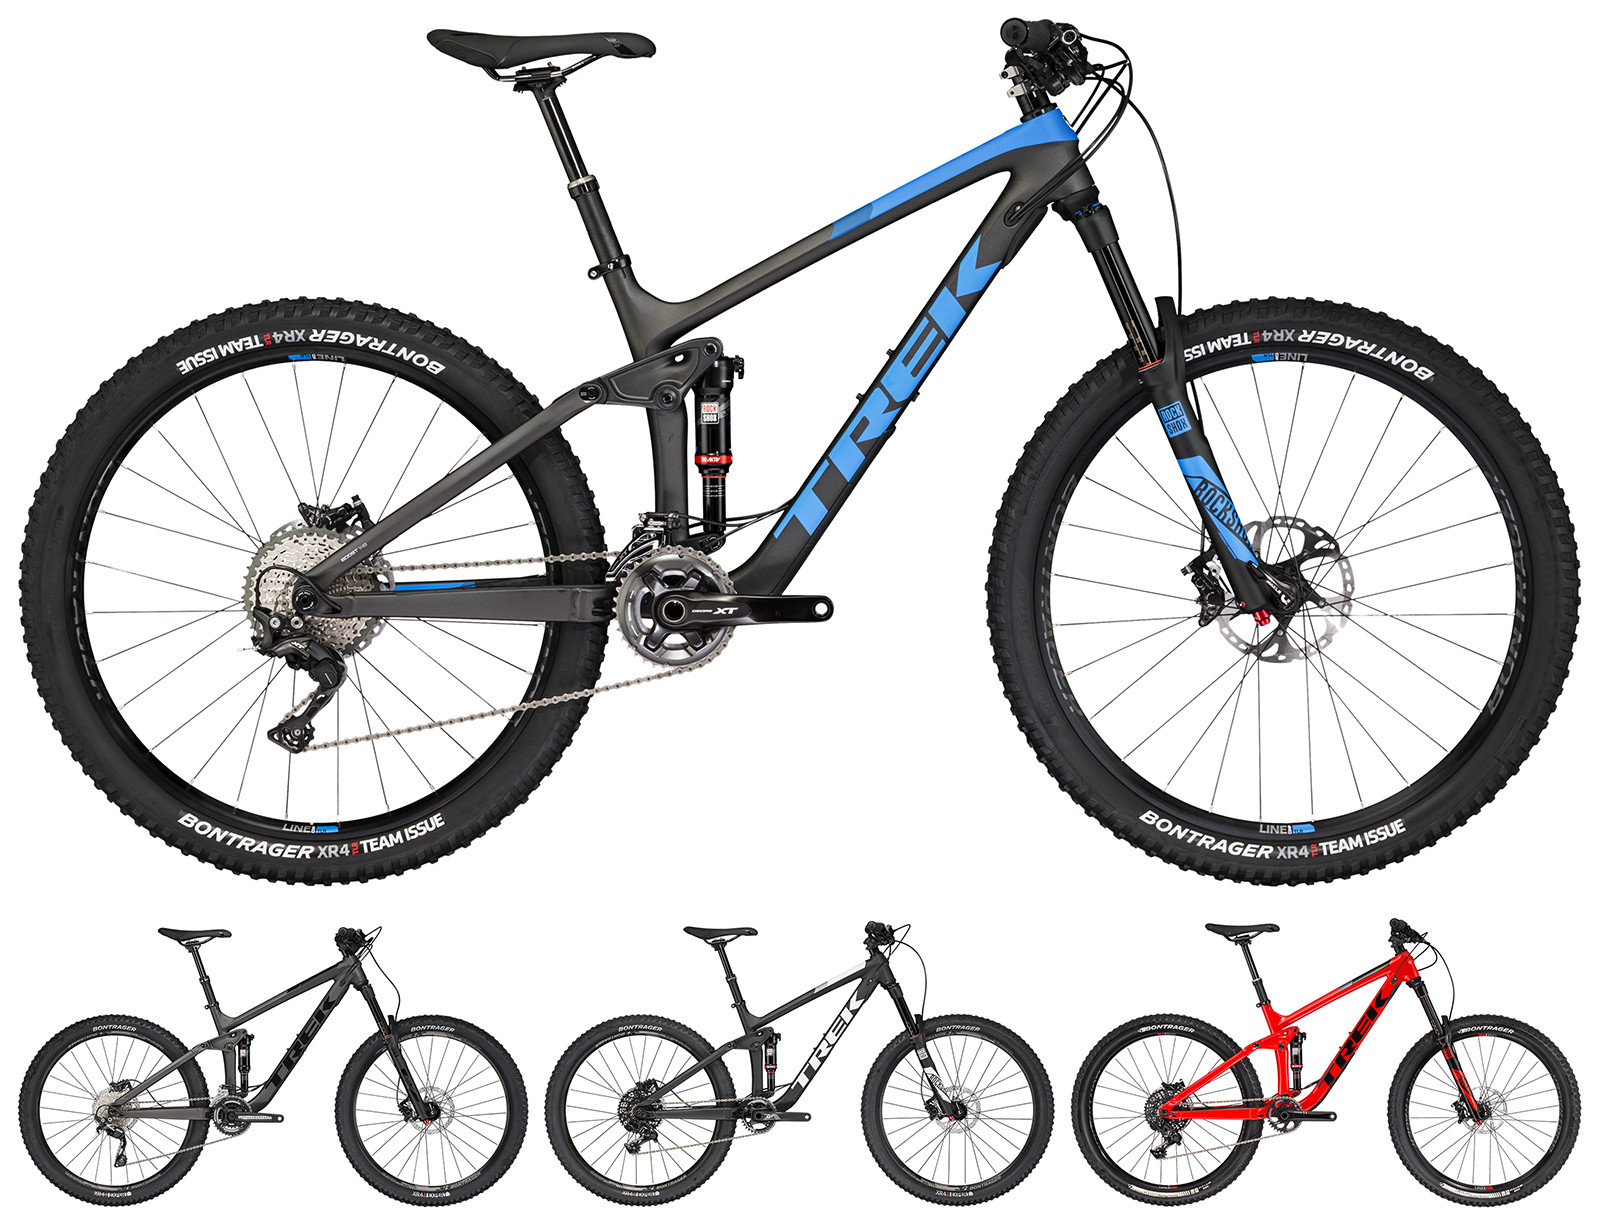 First Look: 2017 Trek Remedy 27.5 and Fuel EX 29 - Mountain Bikes ...